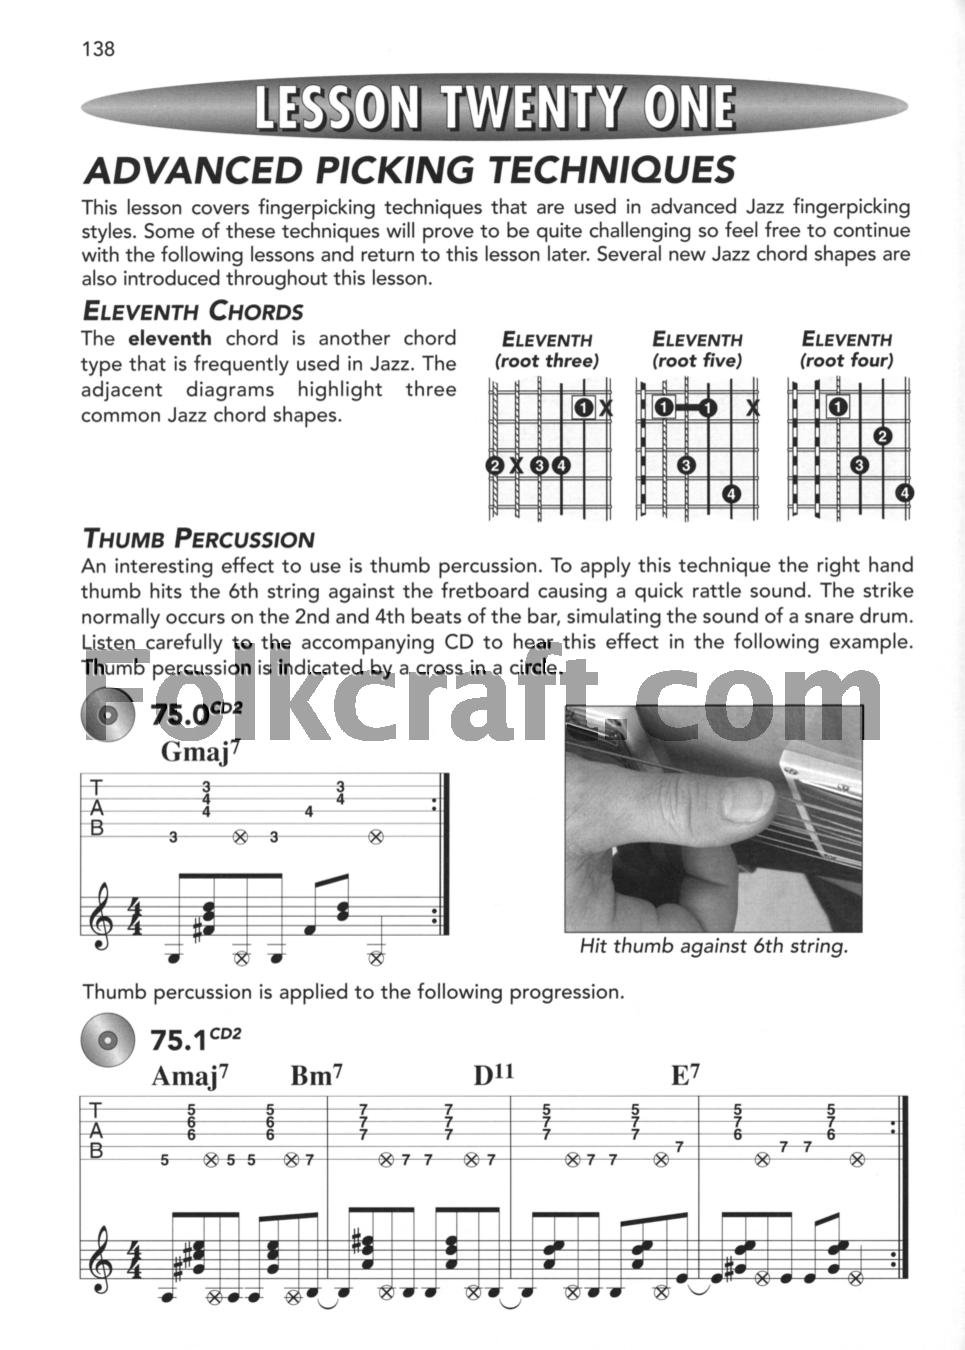 Progressive Complete Learn To Play Fingerpicking Guitar Manual ...